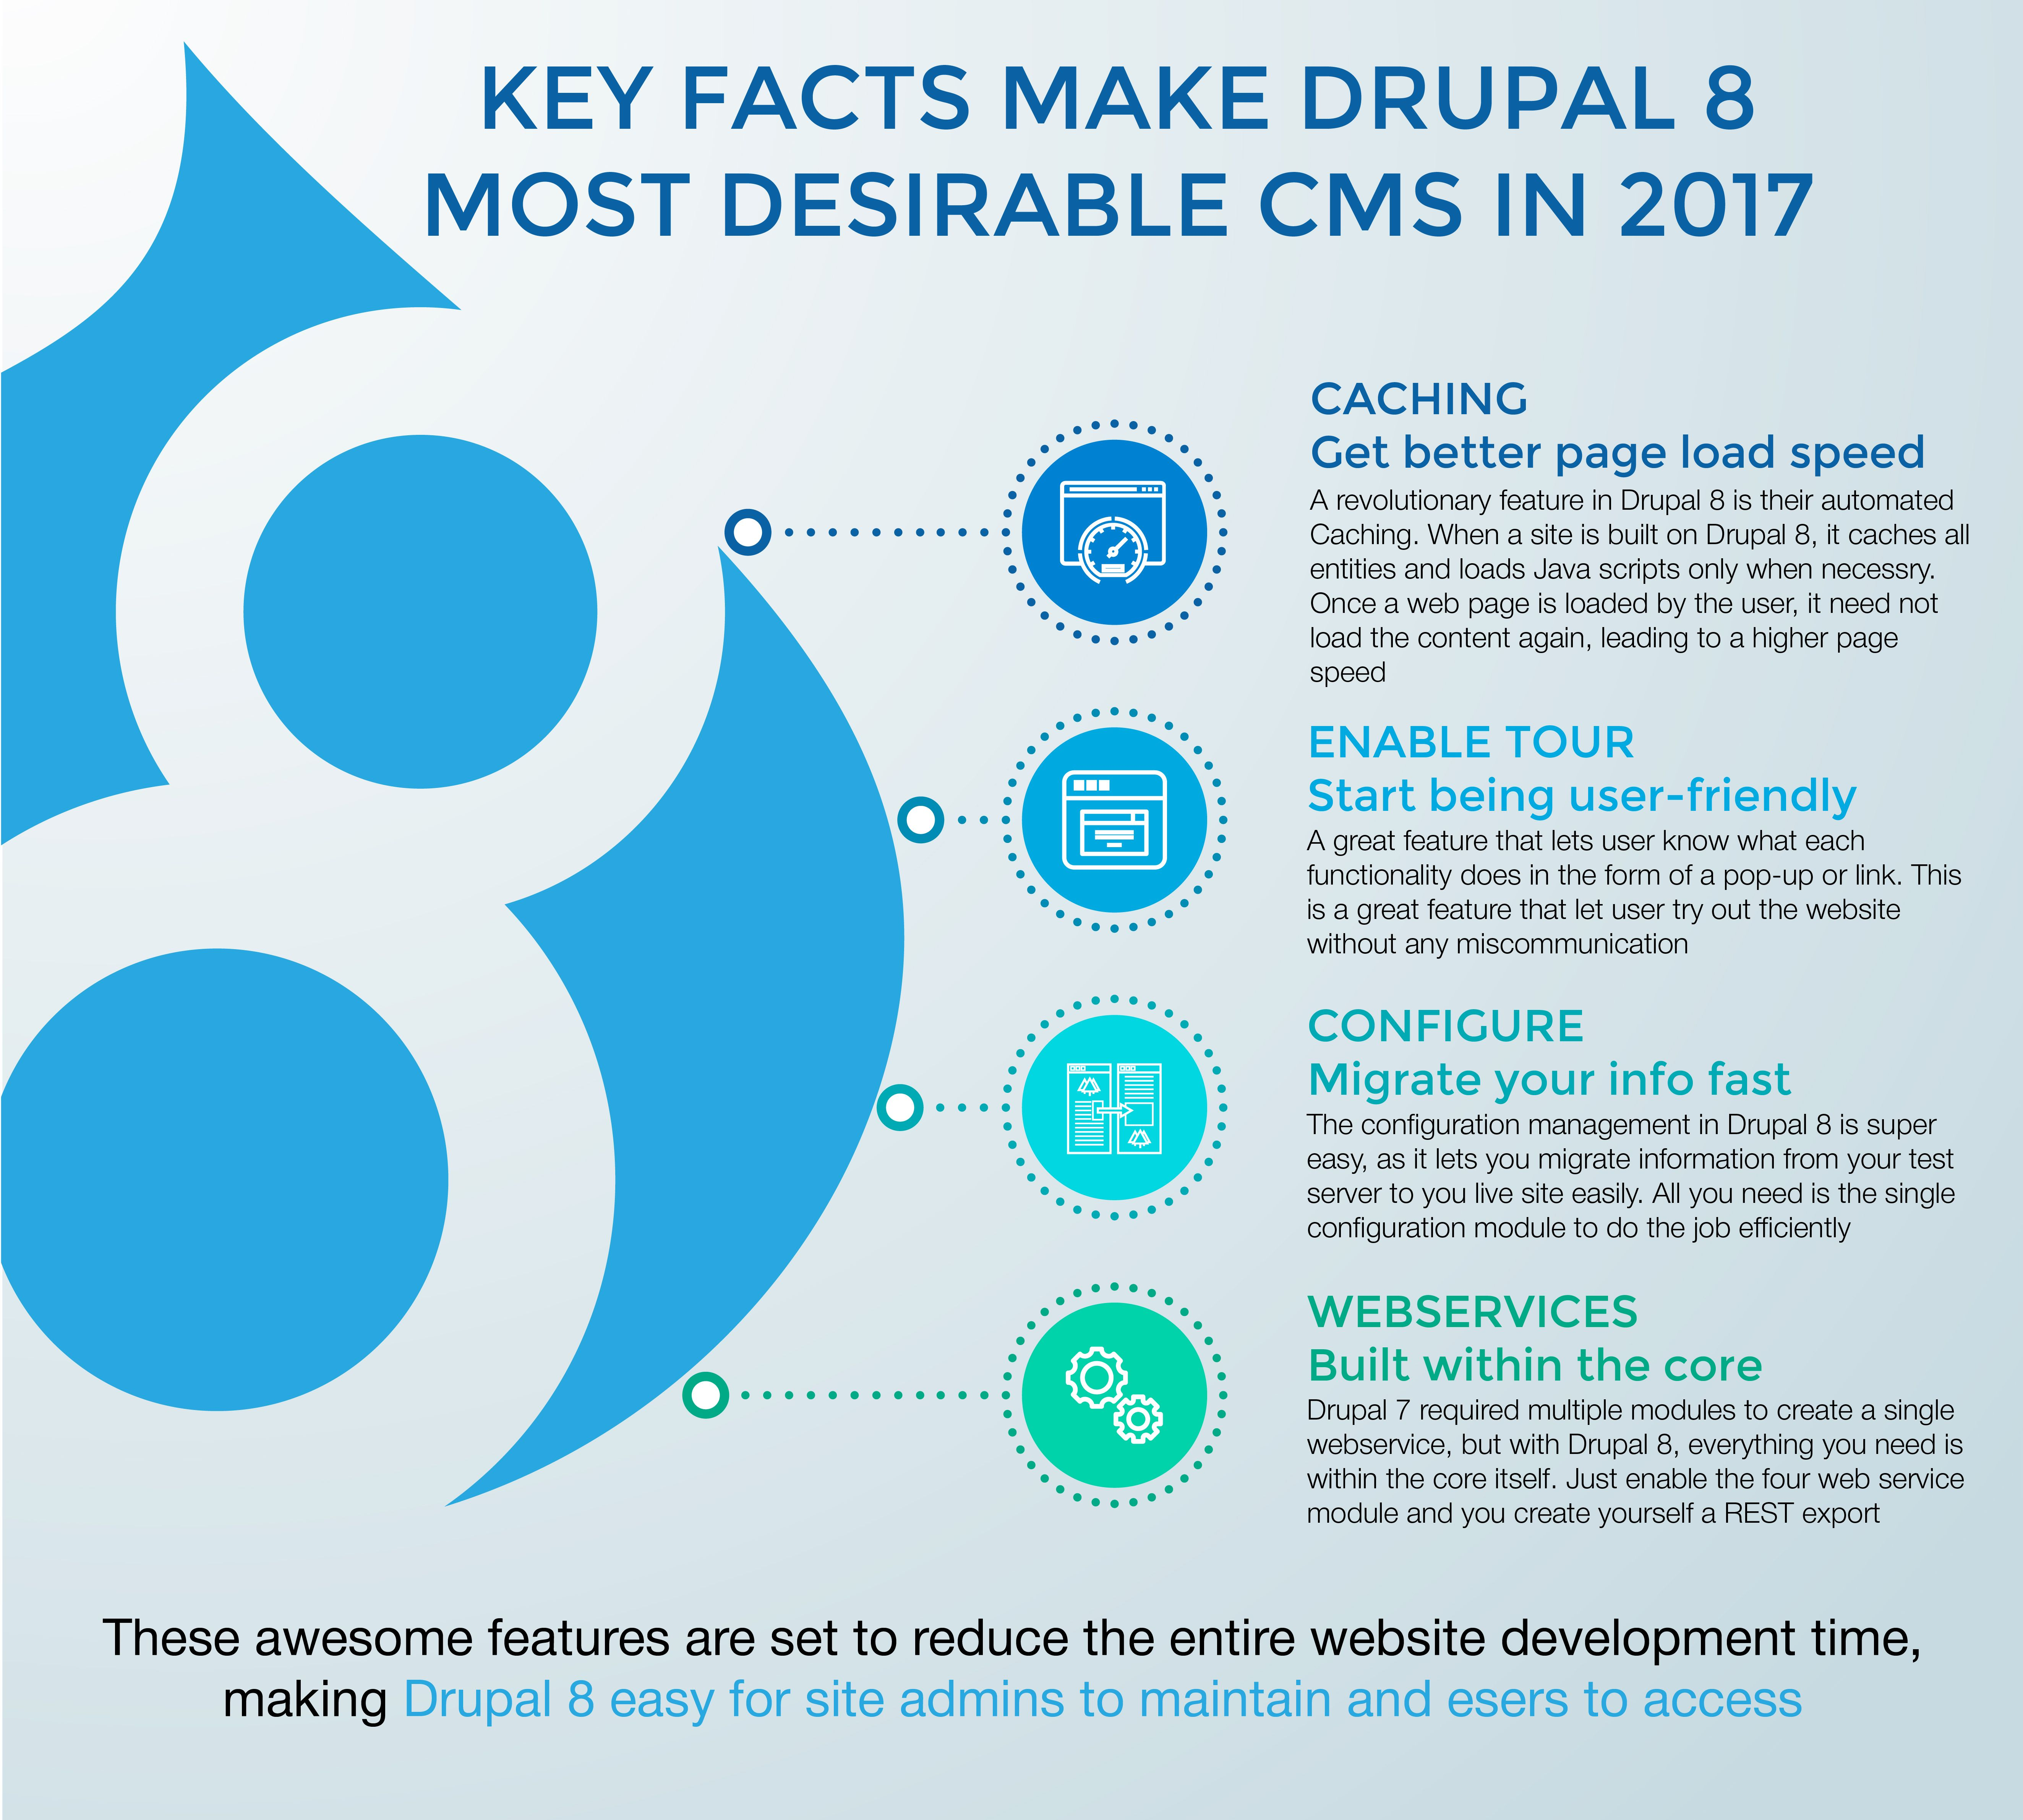 Key facts make drupal 8 most desirable cms in 2017 awg drupal key facts make drupal 8 most desirable cms in 2017 baditri Images